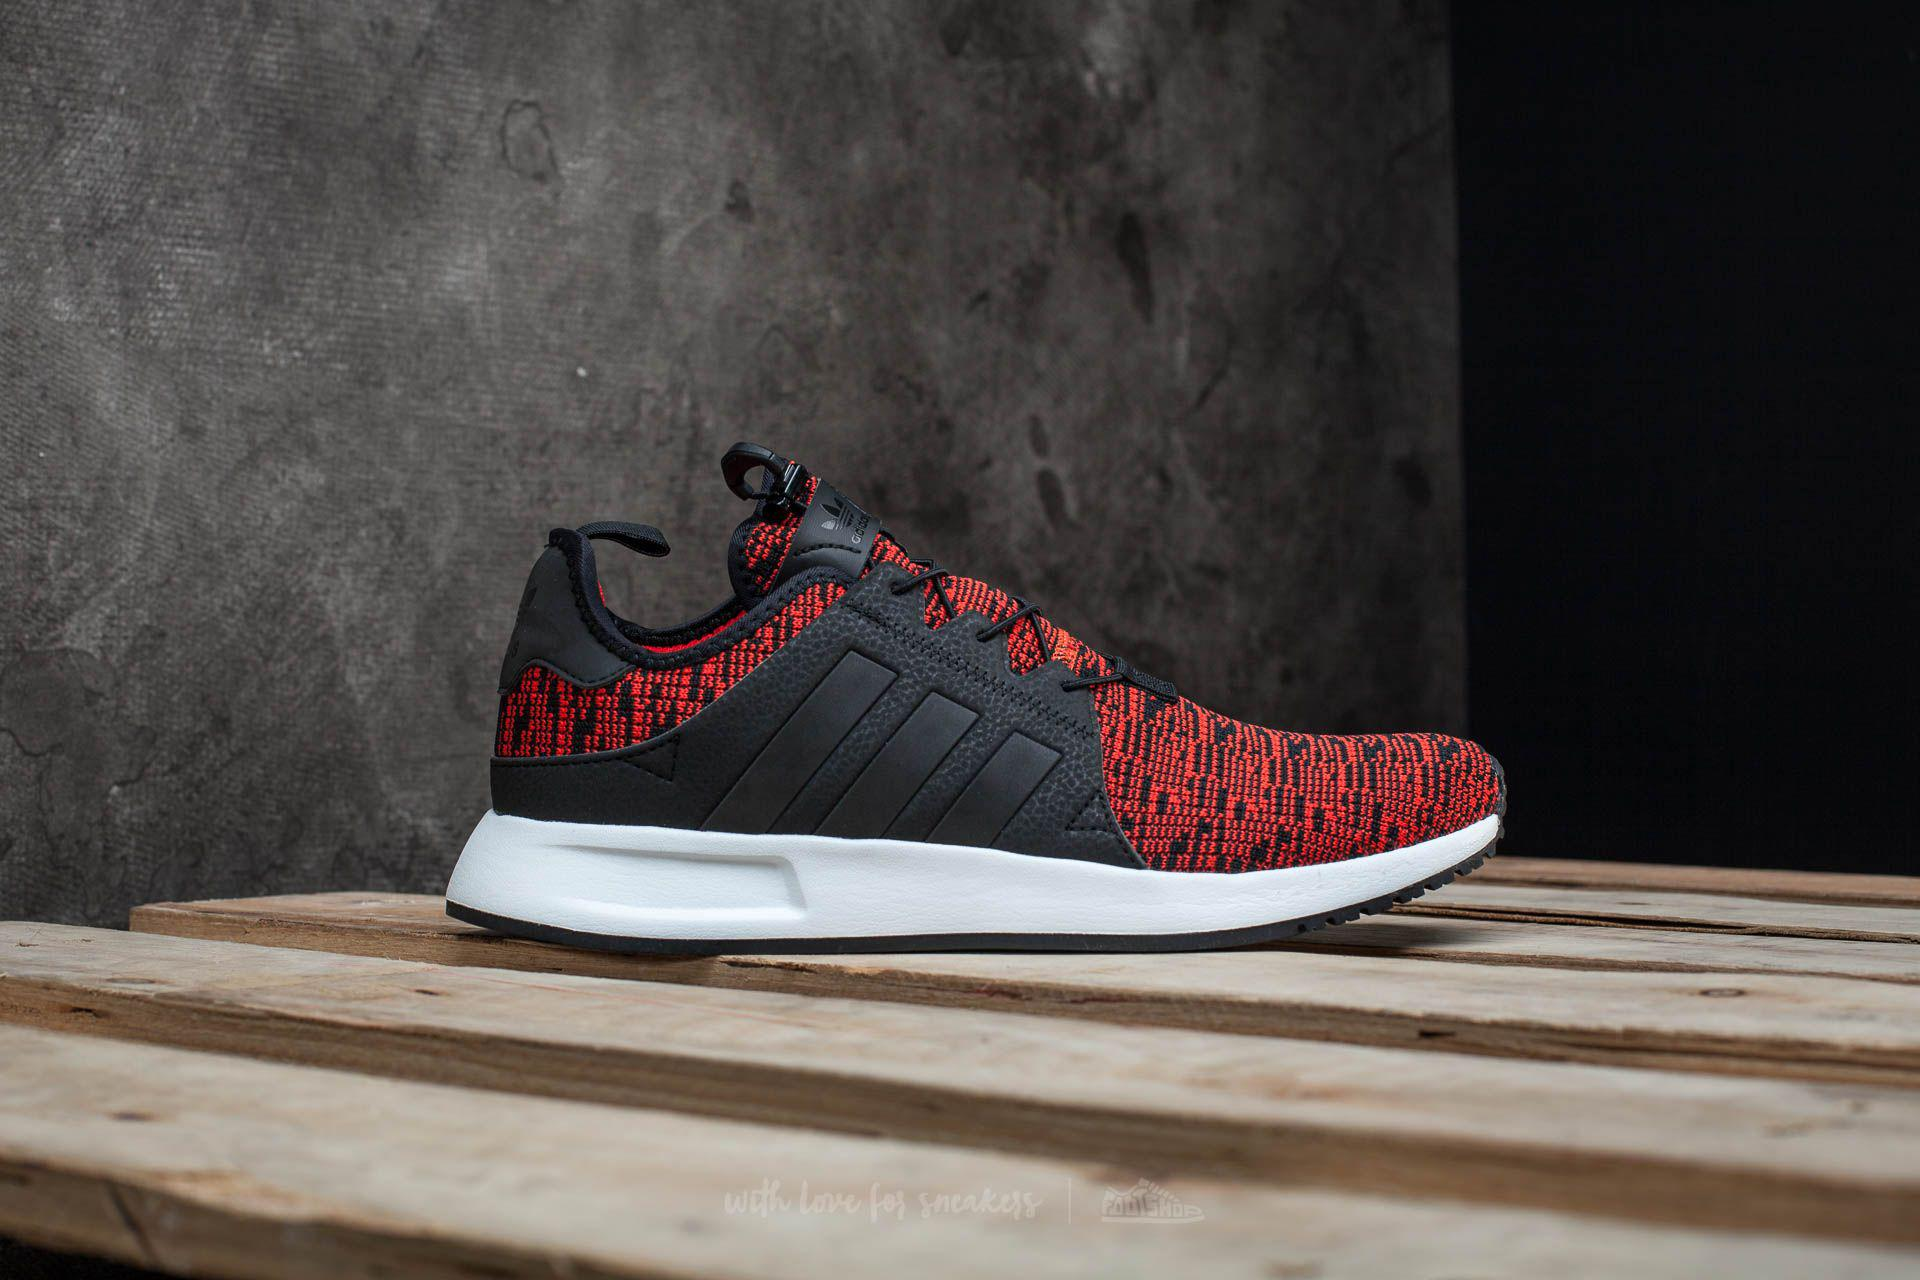 Lyst - adidas Originals Adidas X plr Core Red  Core Black  Ftw White ... 74fc305ee